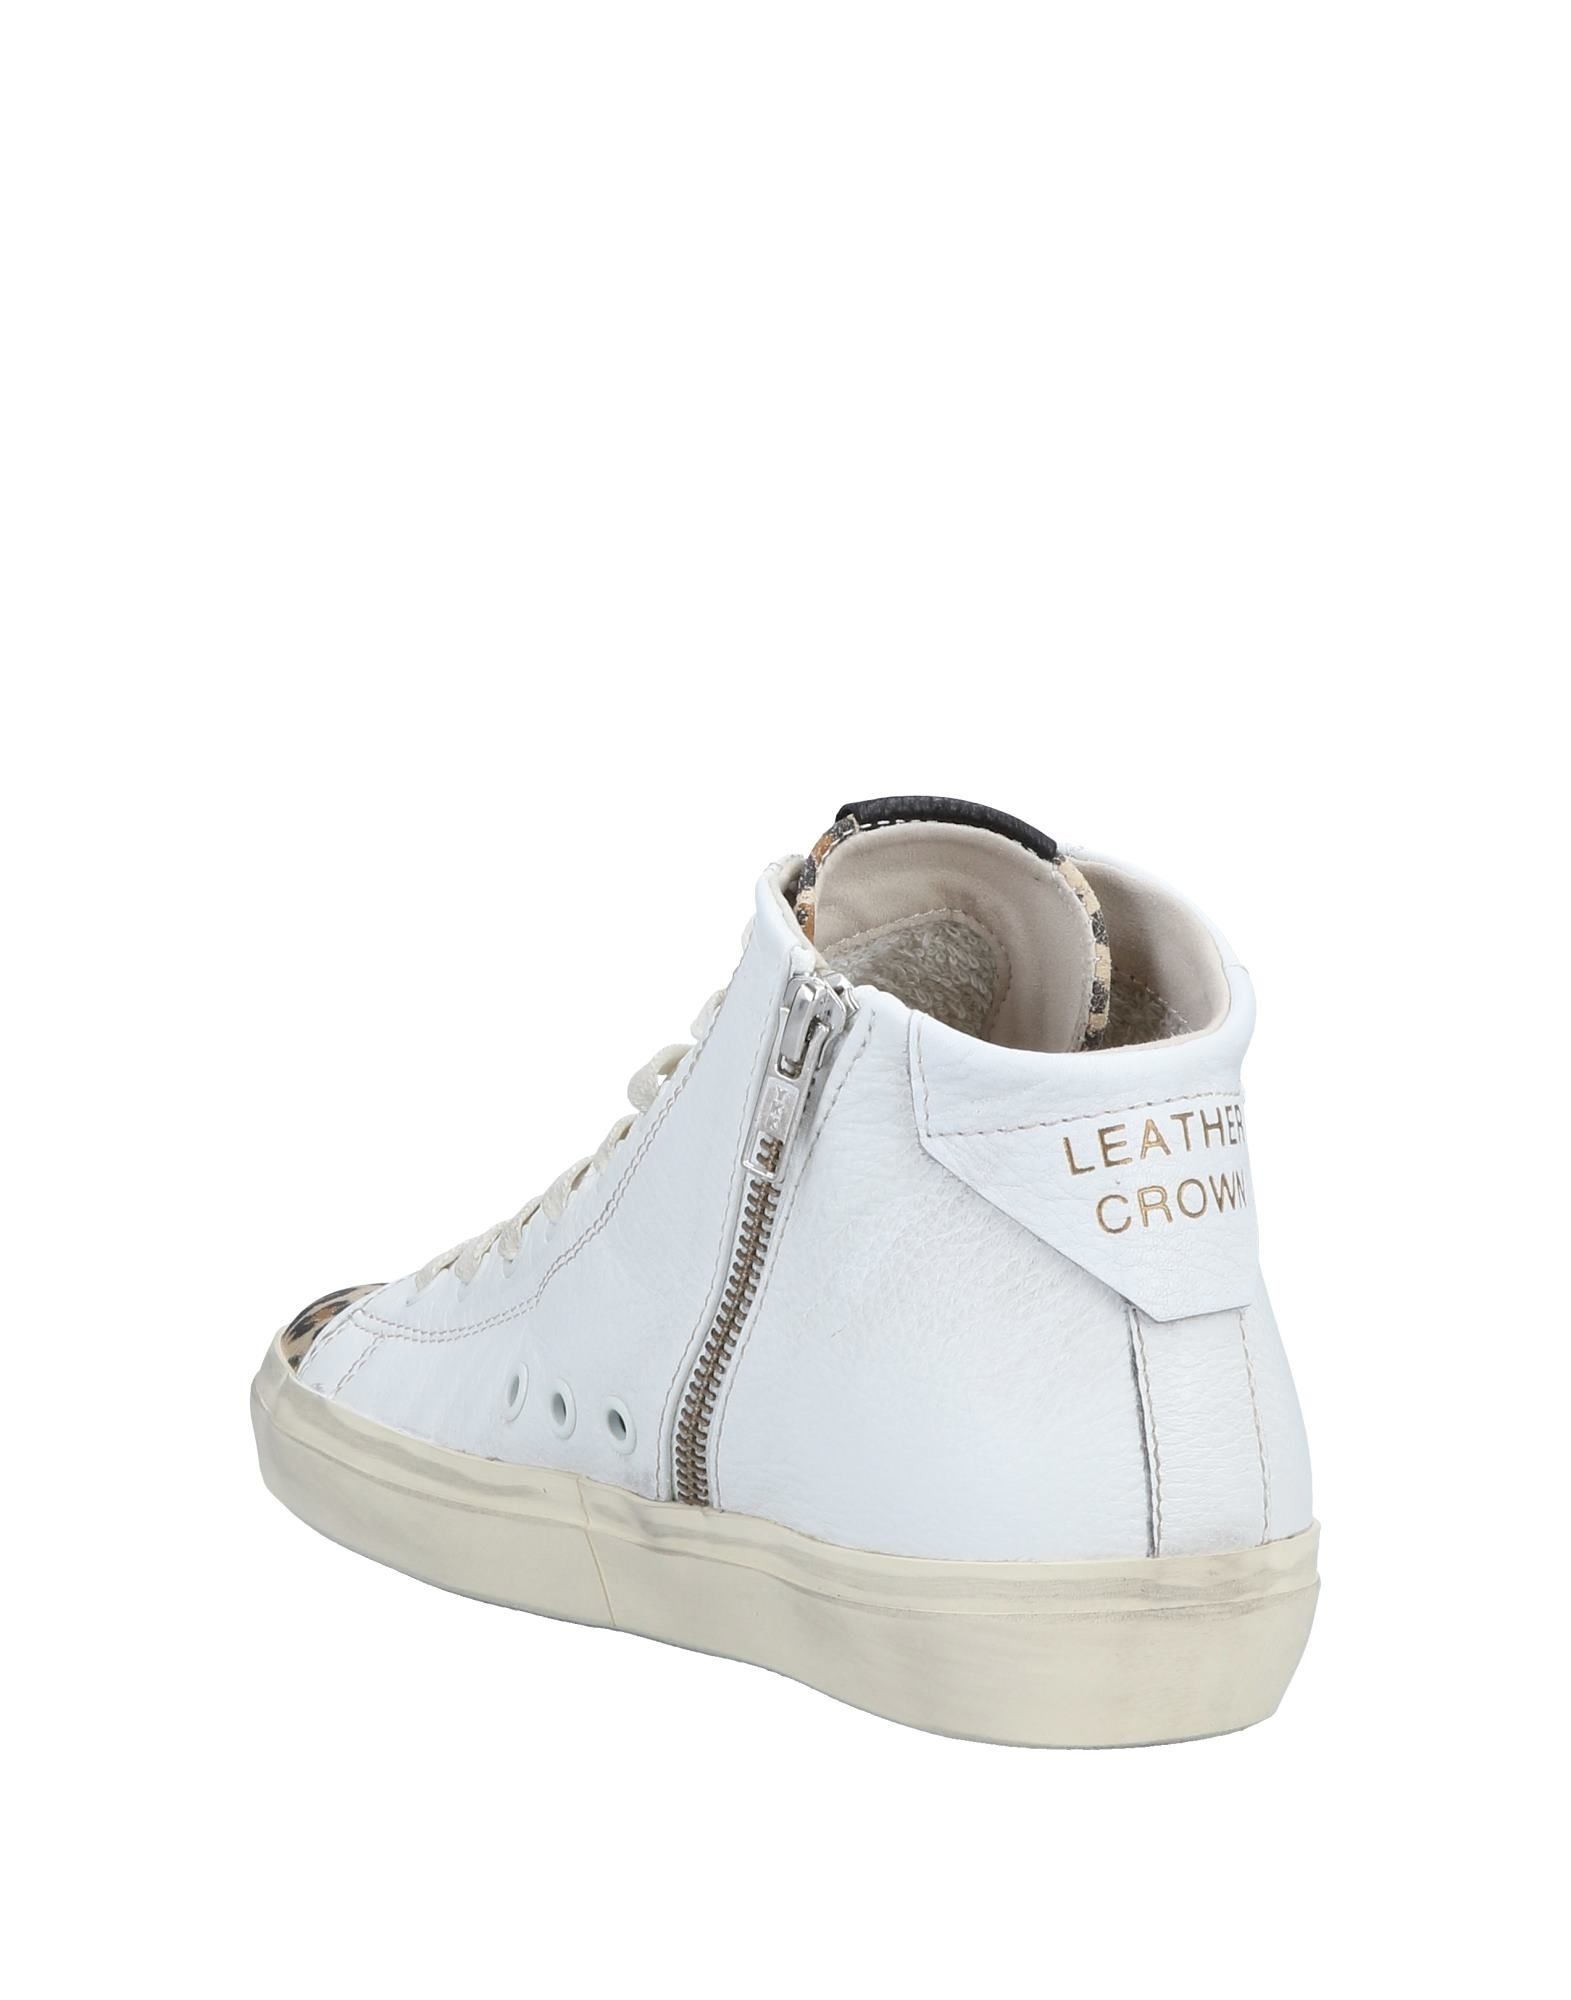 Leather Crown Sneakers - Women Leather Crown Crown Crown Sneakers online on  United Kingdom - 11566658EB 687f13